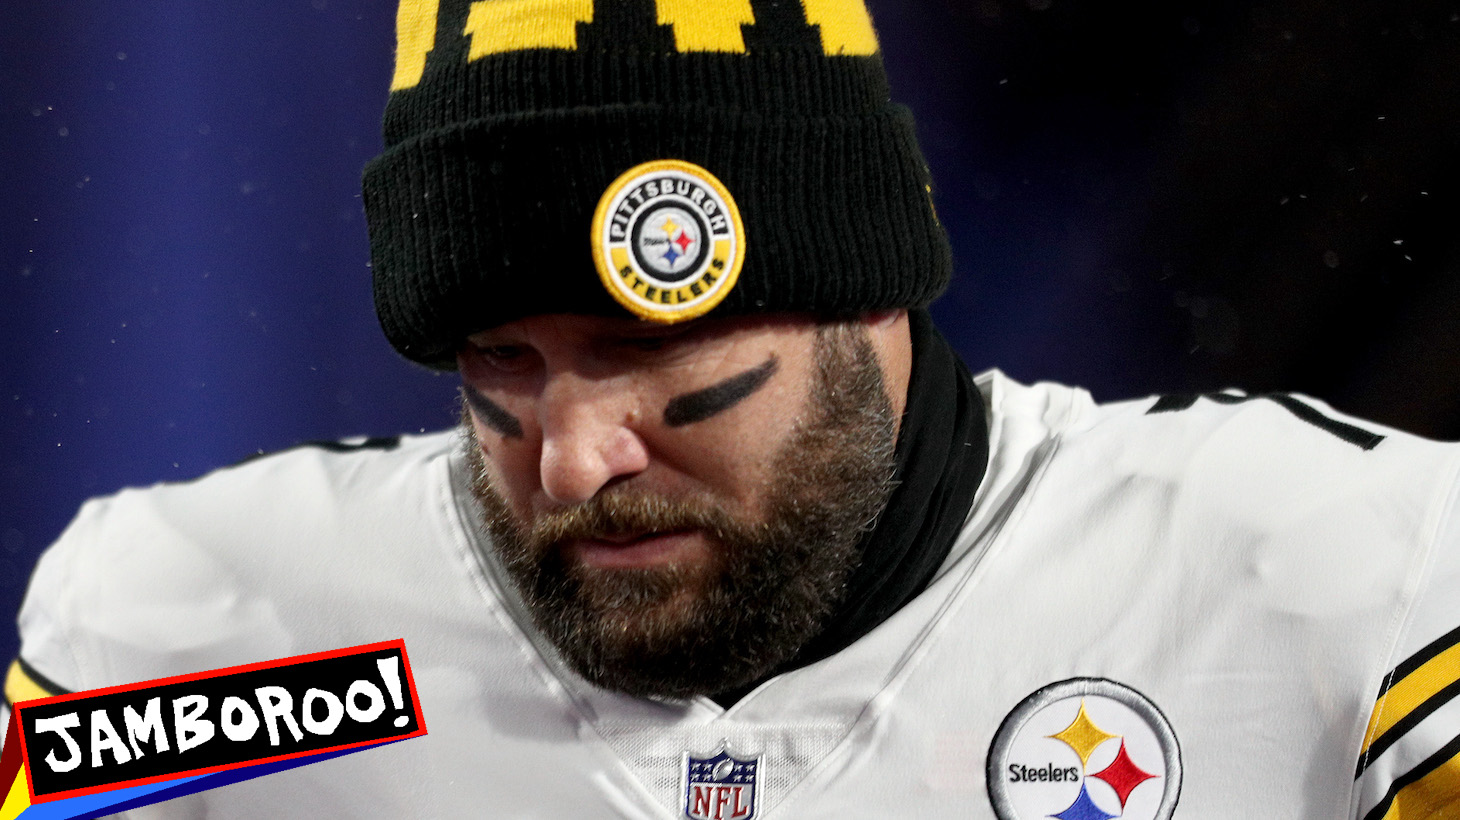 ORCHARD PARK, NEW YORK - DECEMBER 13: Ben Roethlisberger #7 of the Pittsburgh Steelers enters the field before the game against the Buffalo Bills at Bills Stadium on December 13, 2020 in Orchard Park, New York. (Photo by Bryan M. Bennett/Getty Images)